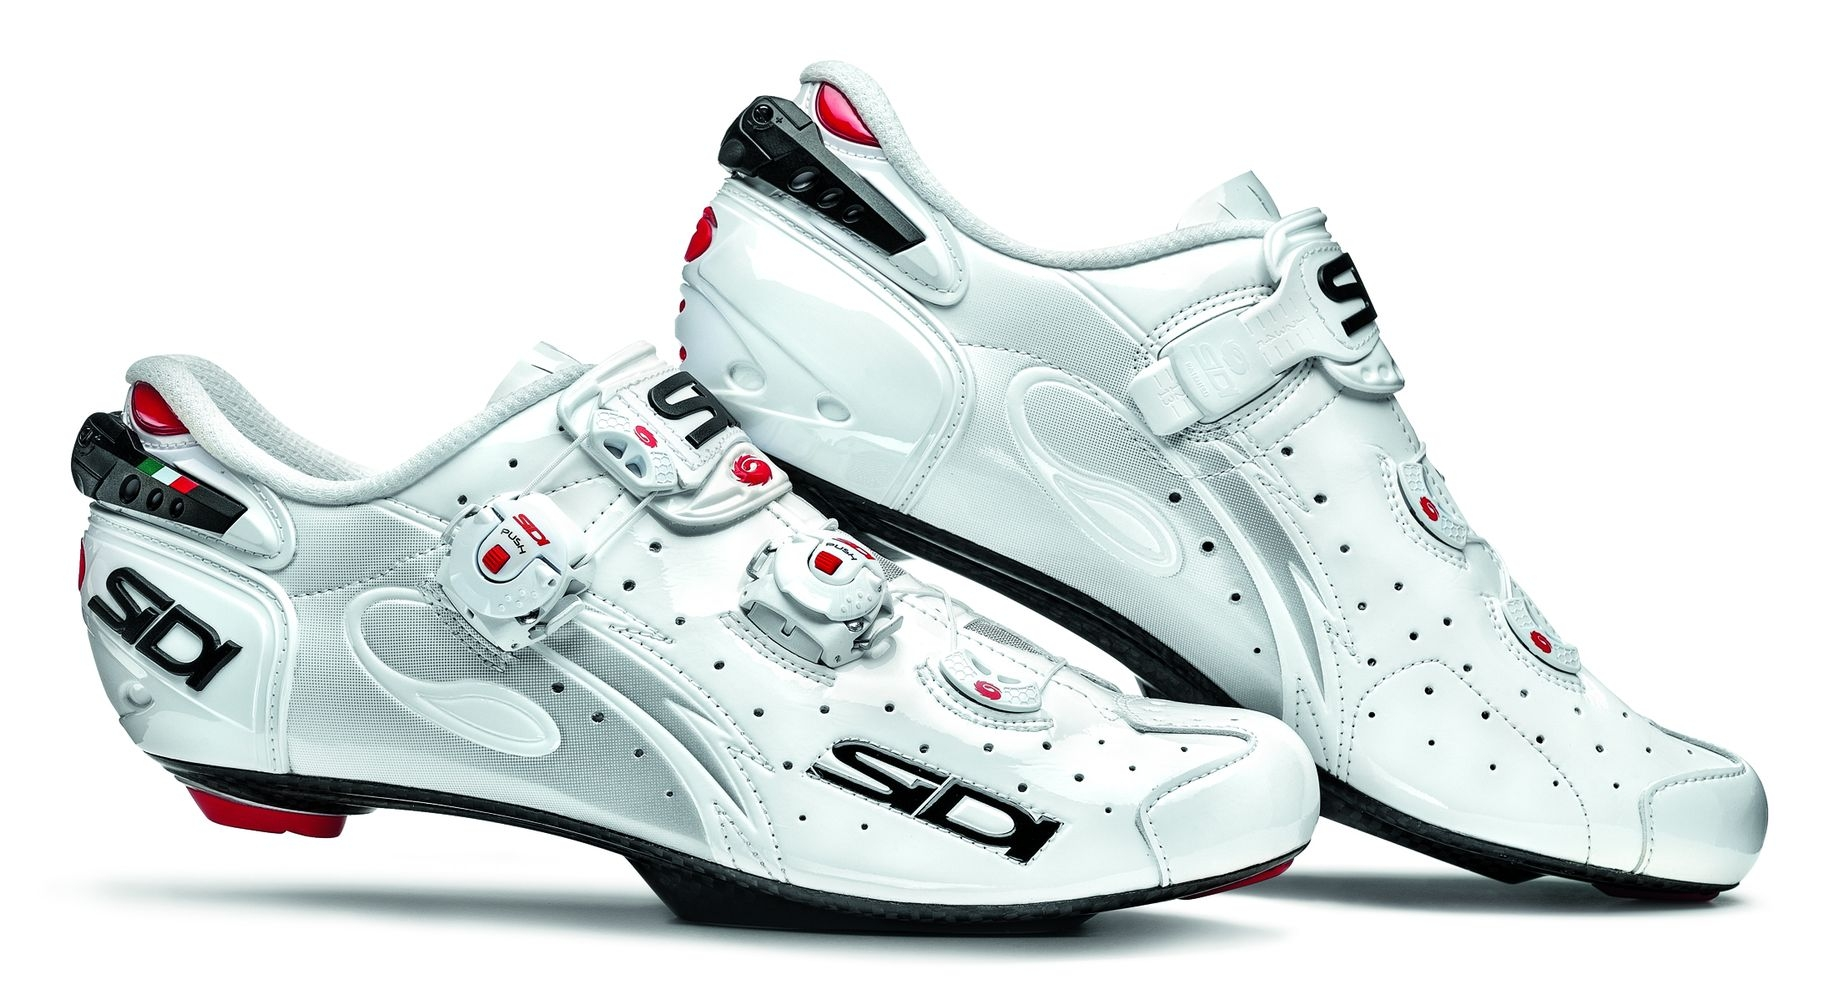 Chaussures Sidi WIRE Speedplay Carbon Vernice Blanc verni - 40,5